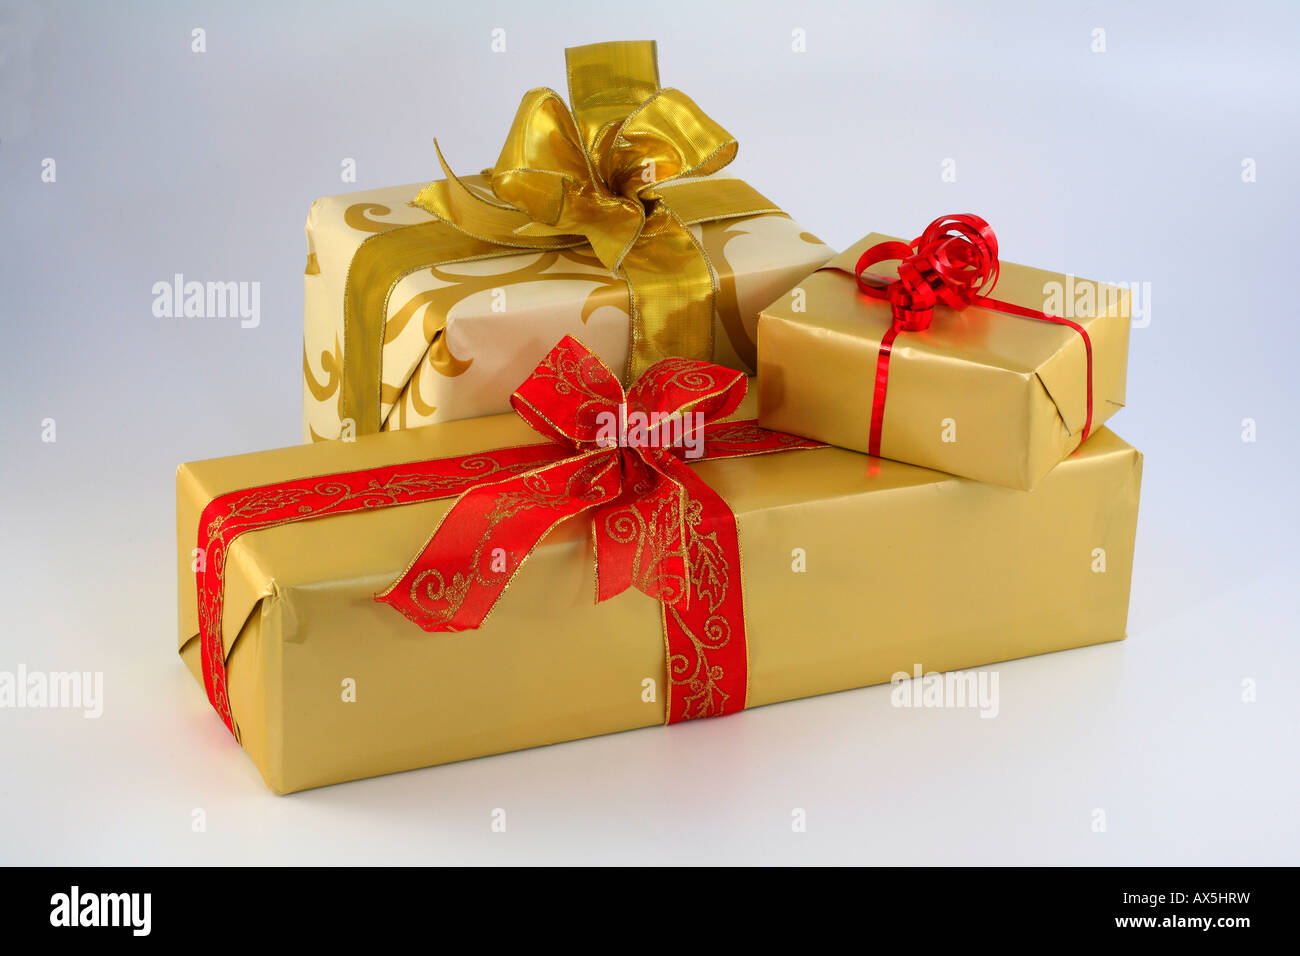 Wrapped christmas presents - Stock Image